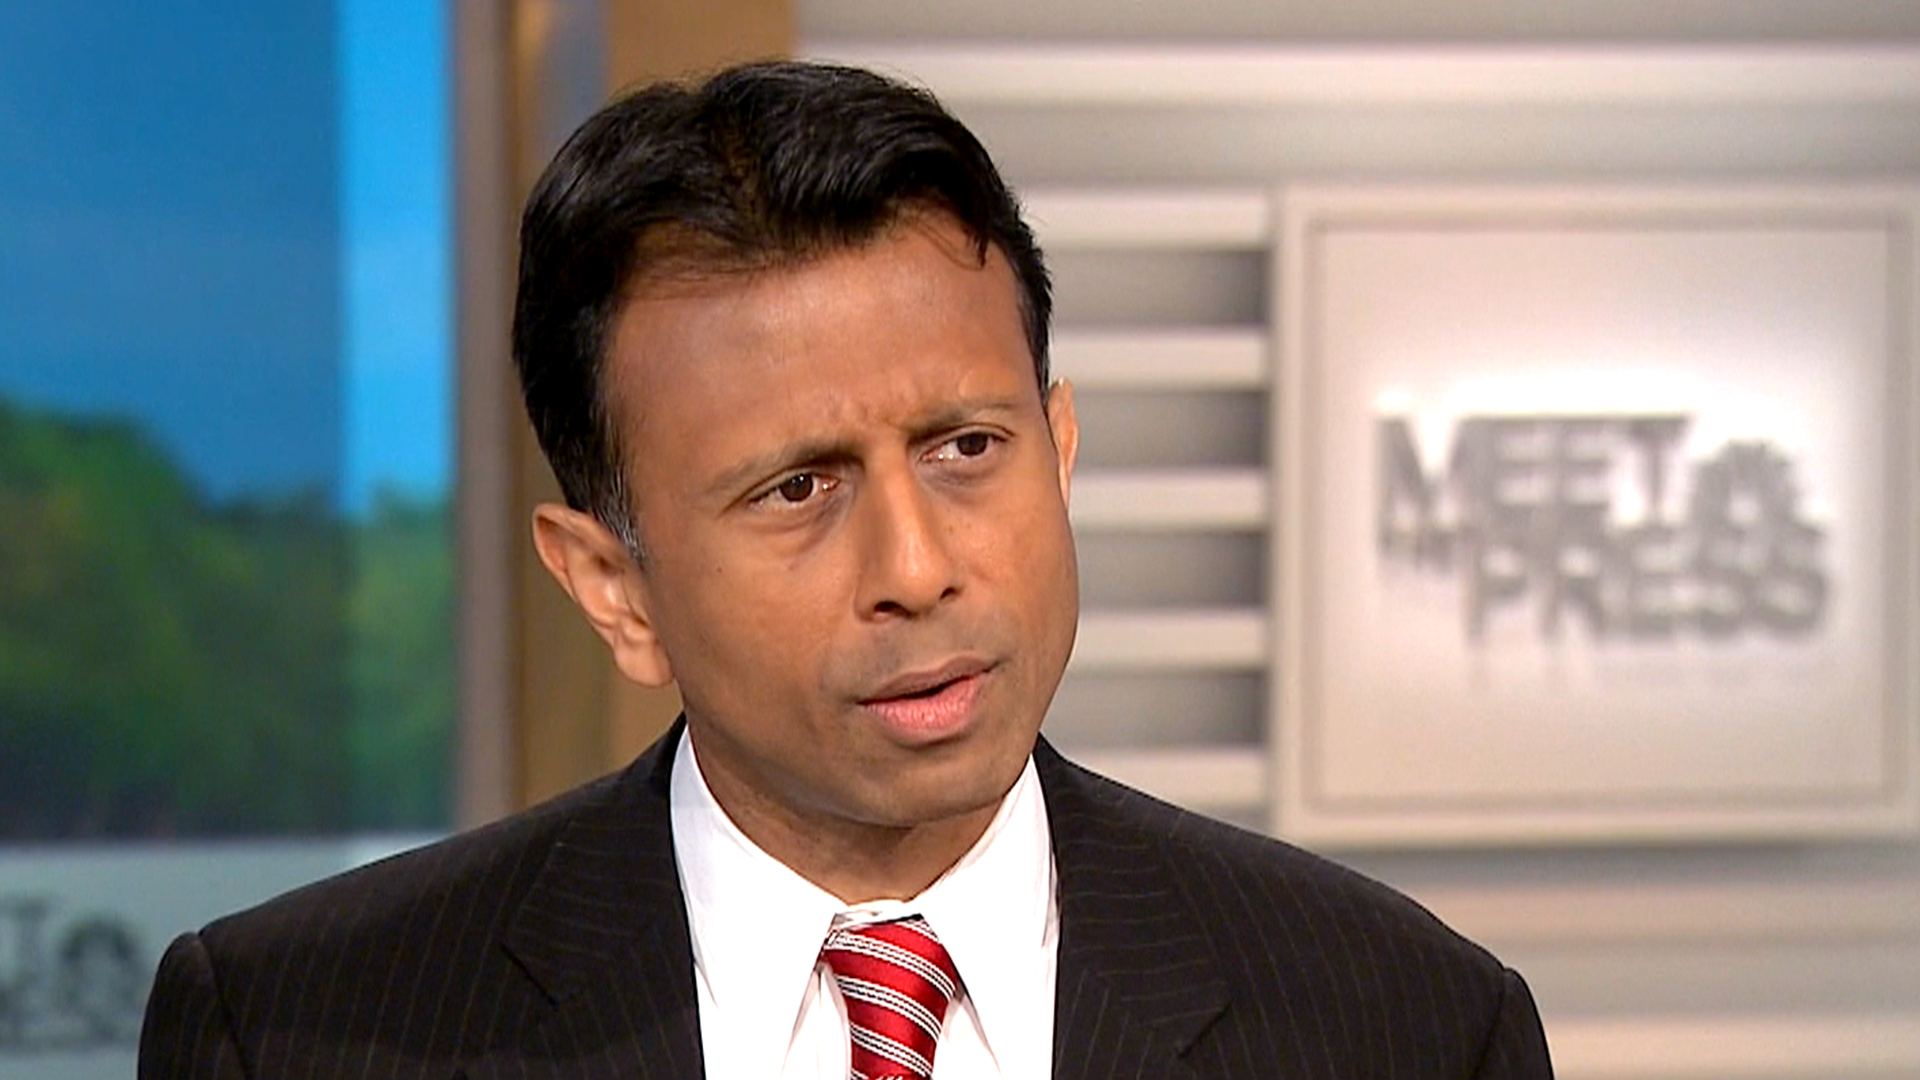 Gov. Bobby Jindal on 2016: 'We Are Praying About This'